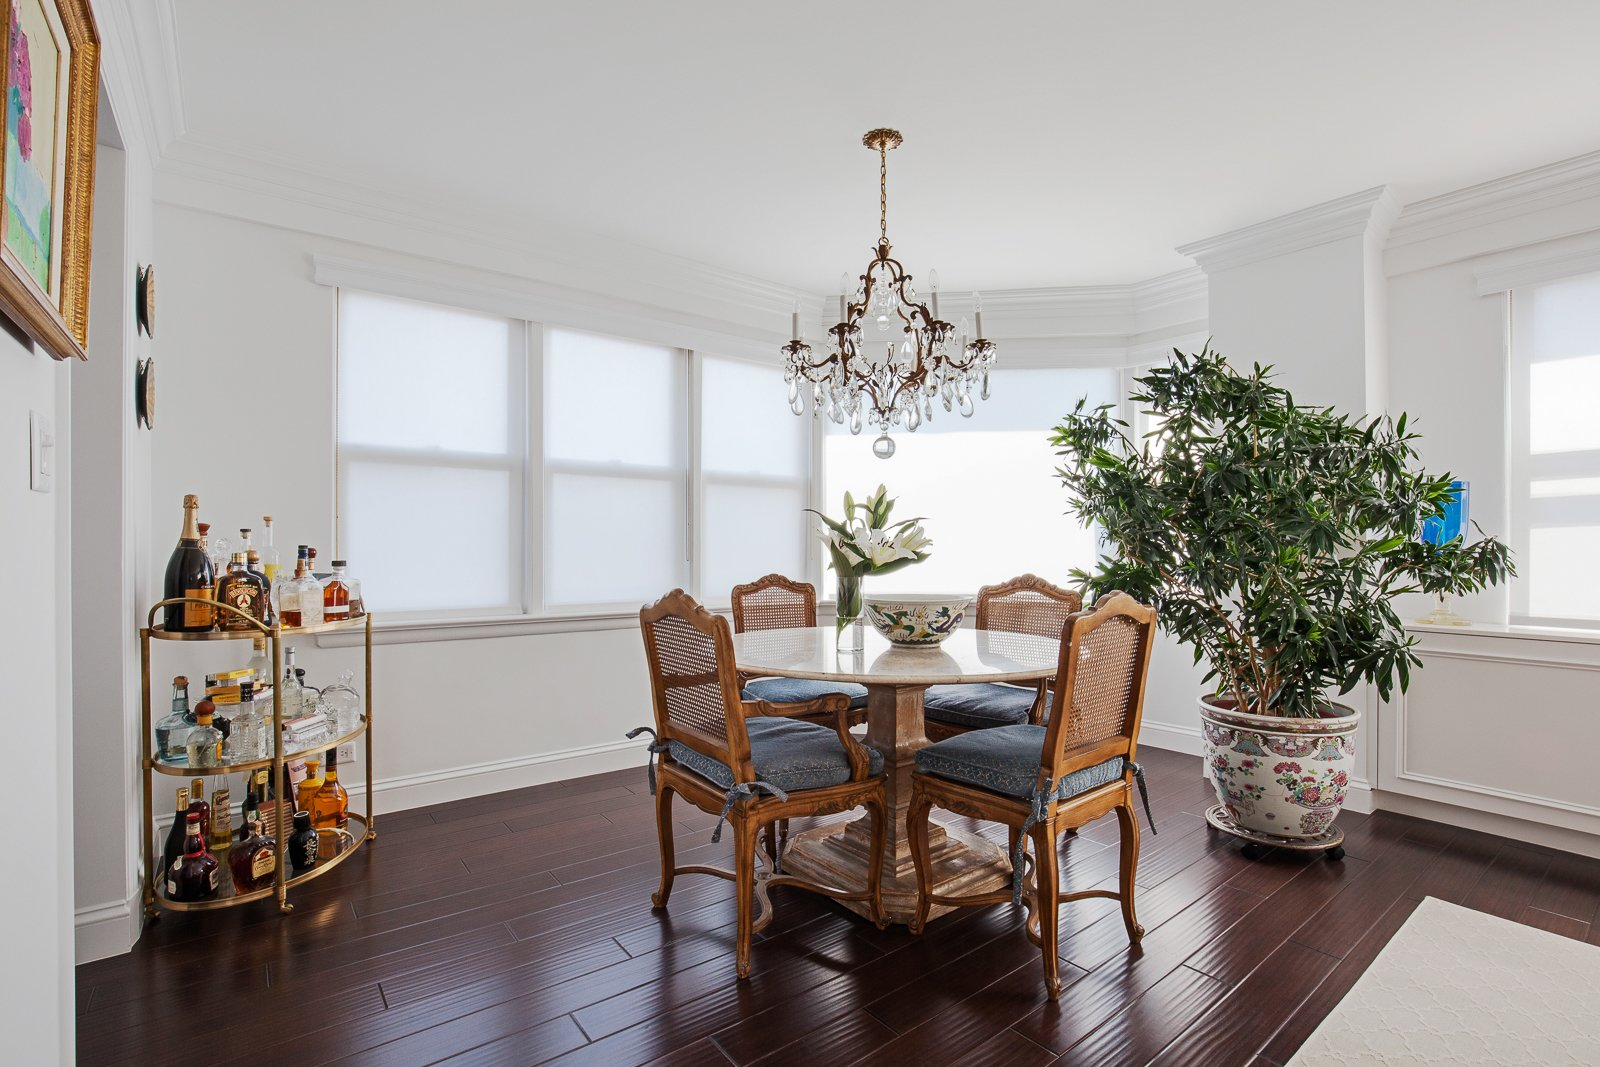 Dining Room and Dark Hardwood Floor  AN ART-FILLED APARTMENT RENOVATION 40 YEARS IN THE MAKING! by Pixy Interiors